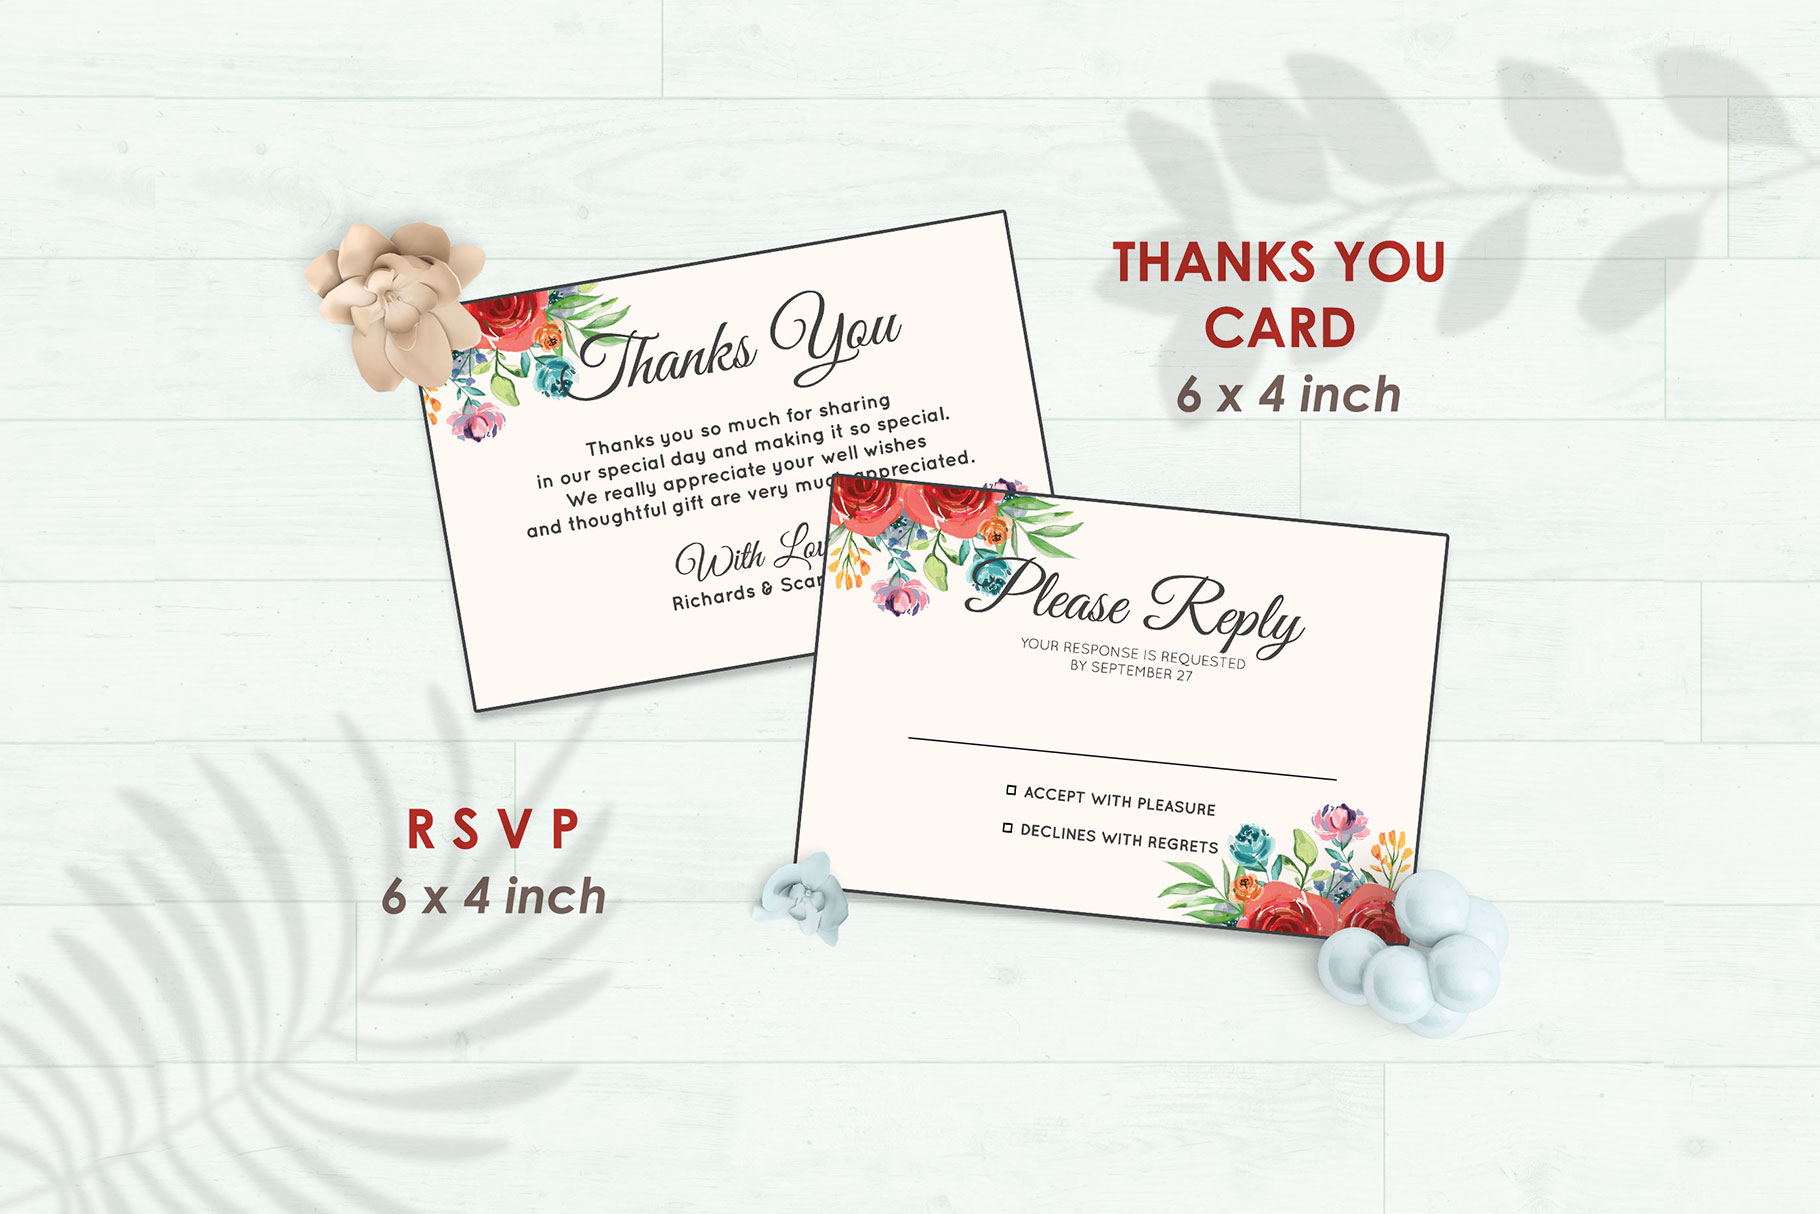 Wedding Invitation Set #4 Watercolor Floral Flower Style example image 4